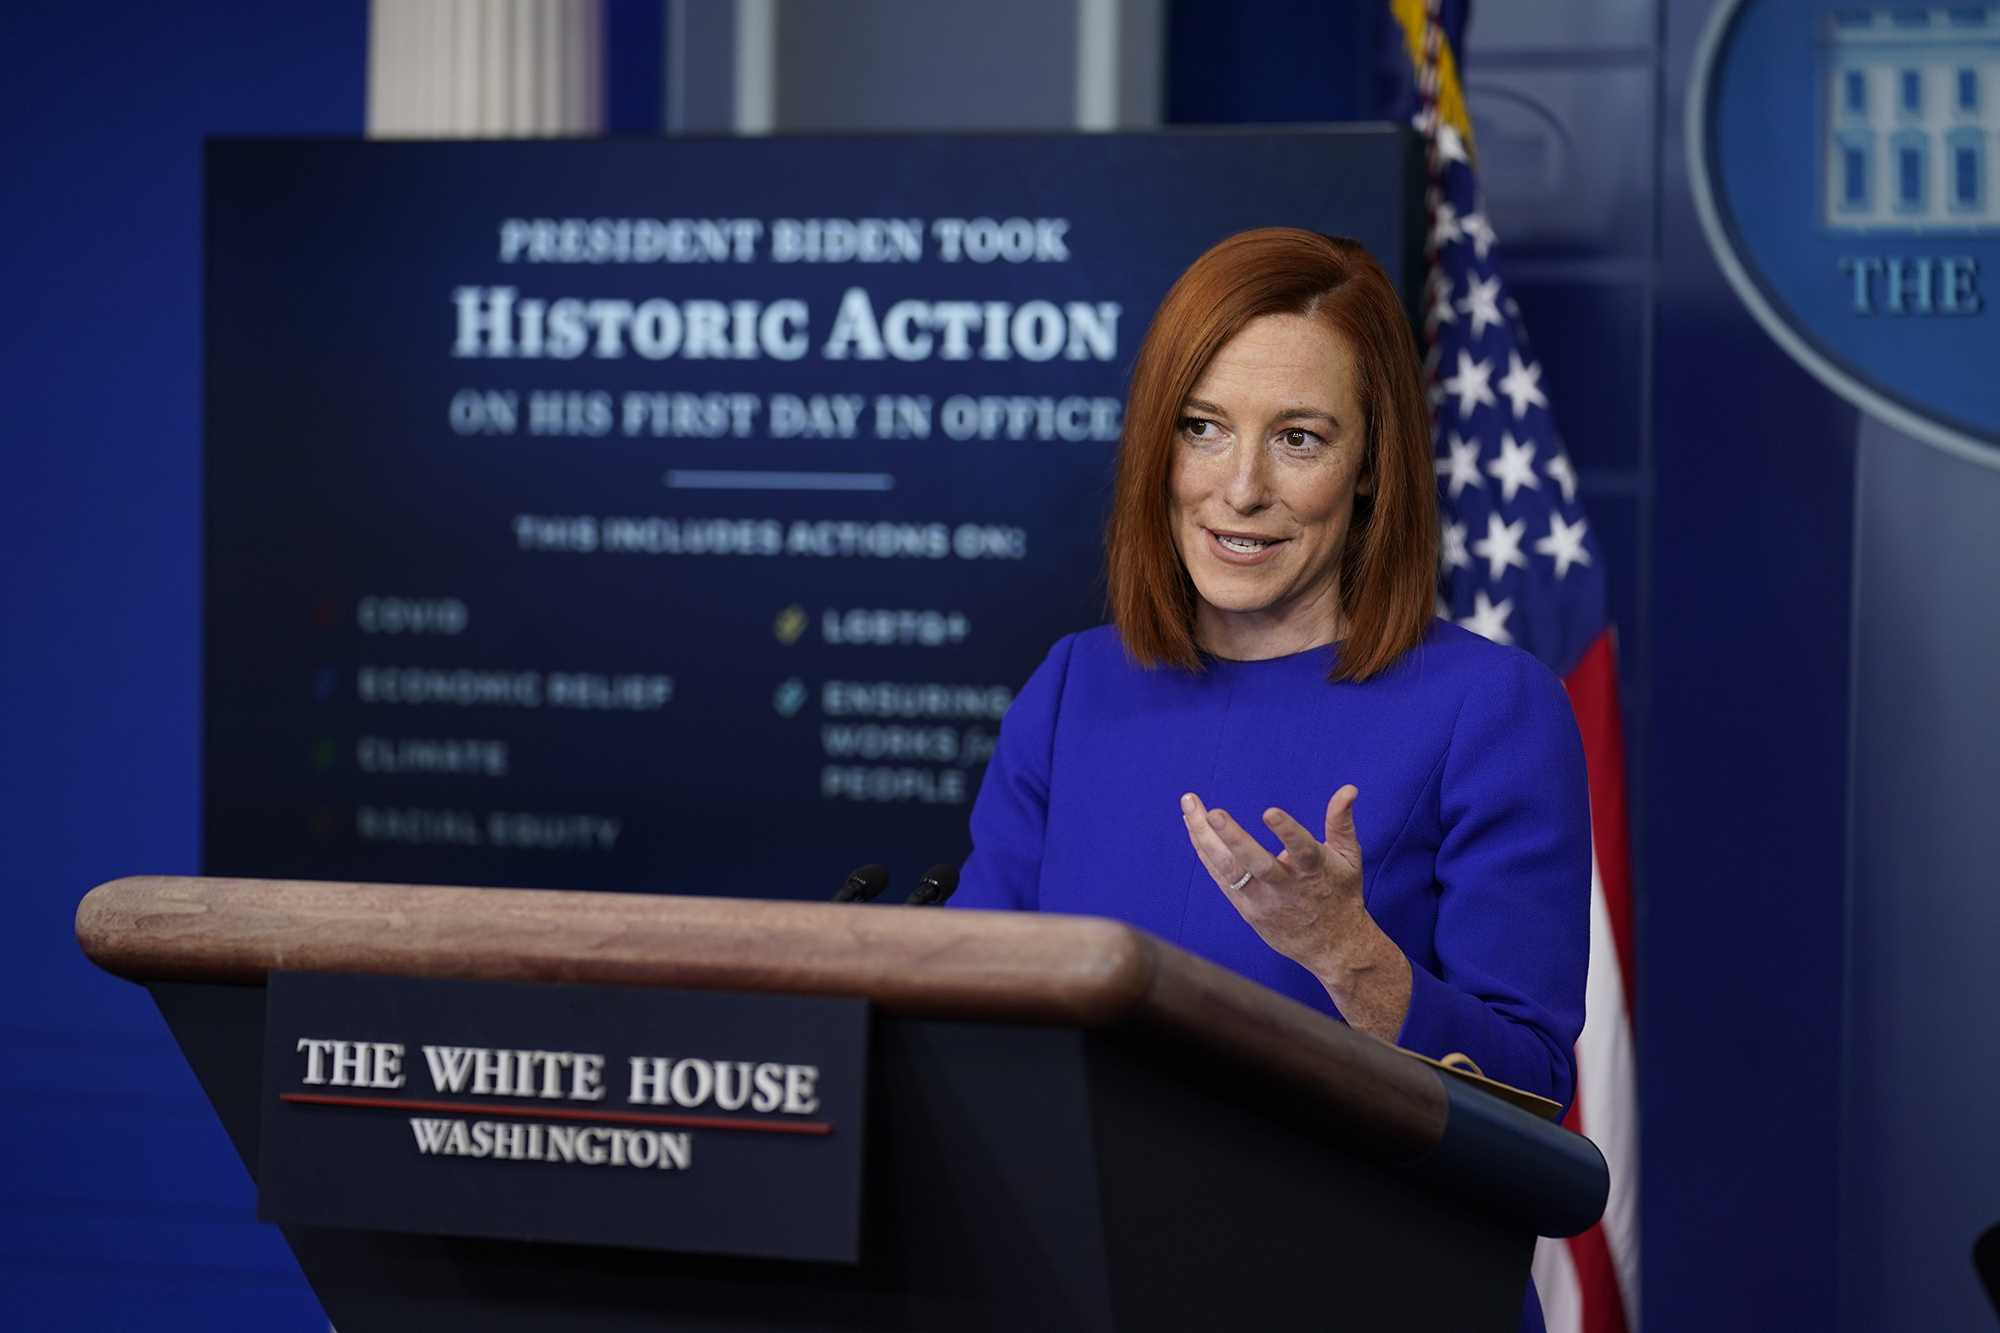 White House press secretary Jen Psaki speaks during her first press briefing at the White House on Wednesday, January 20.